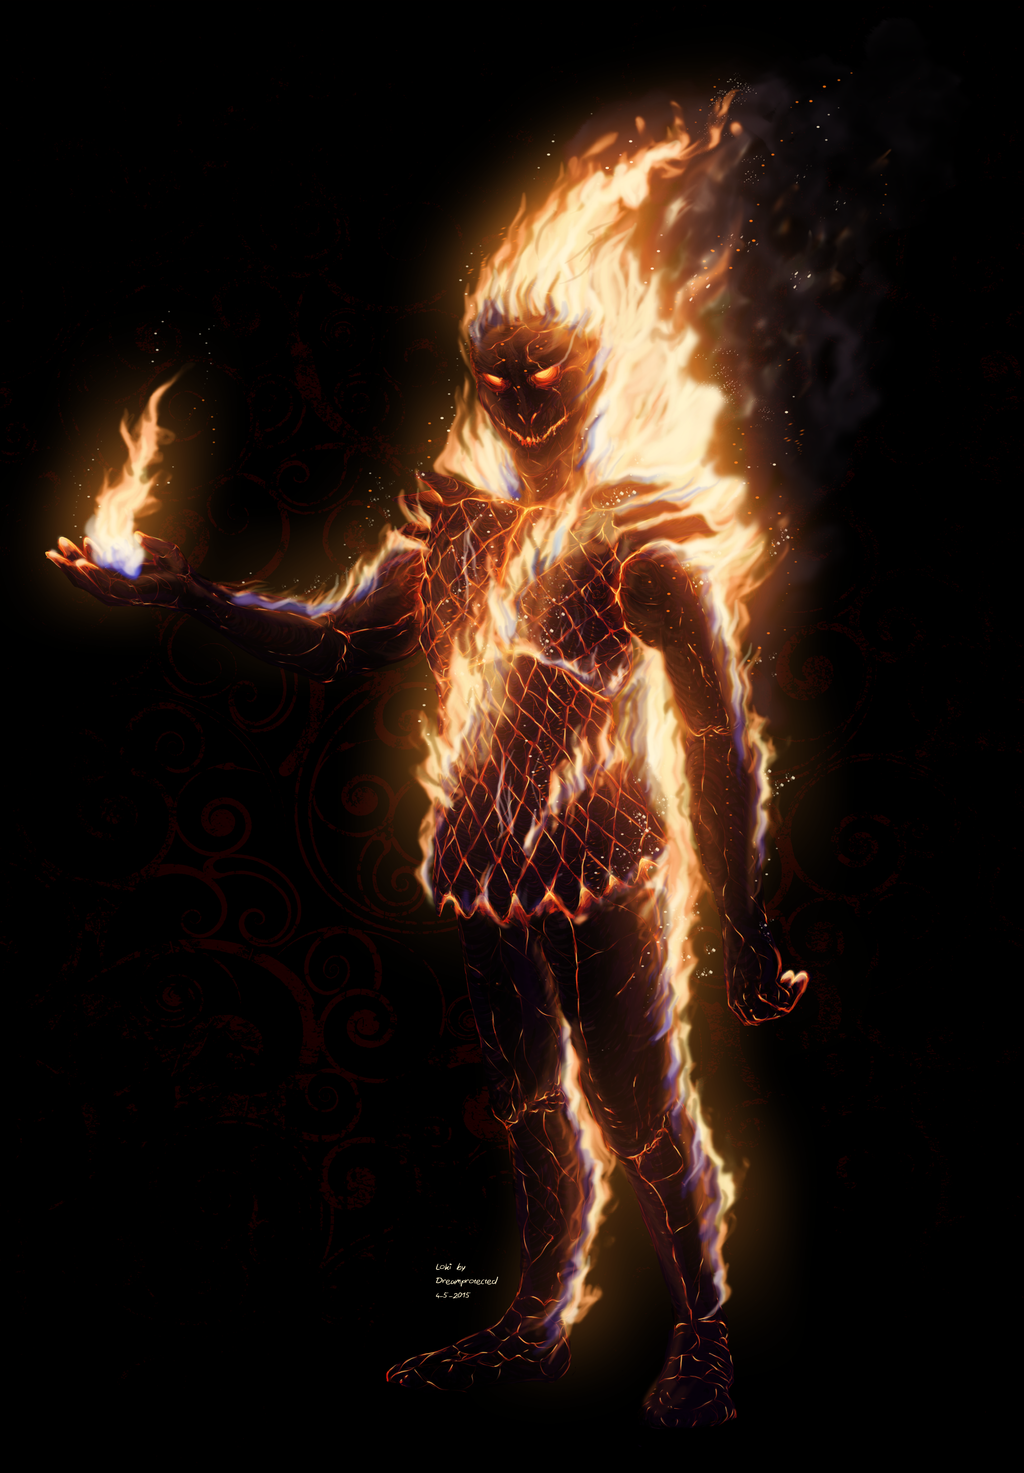 Loki the firegod by Dreamprotected